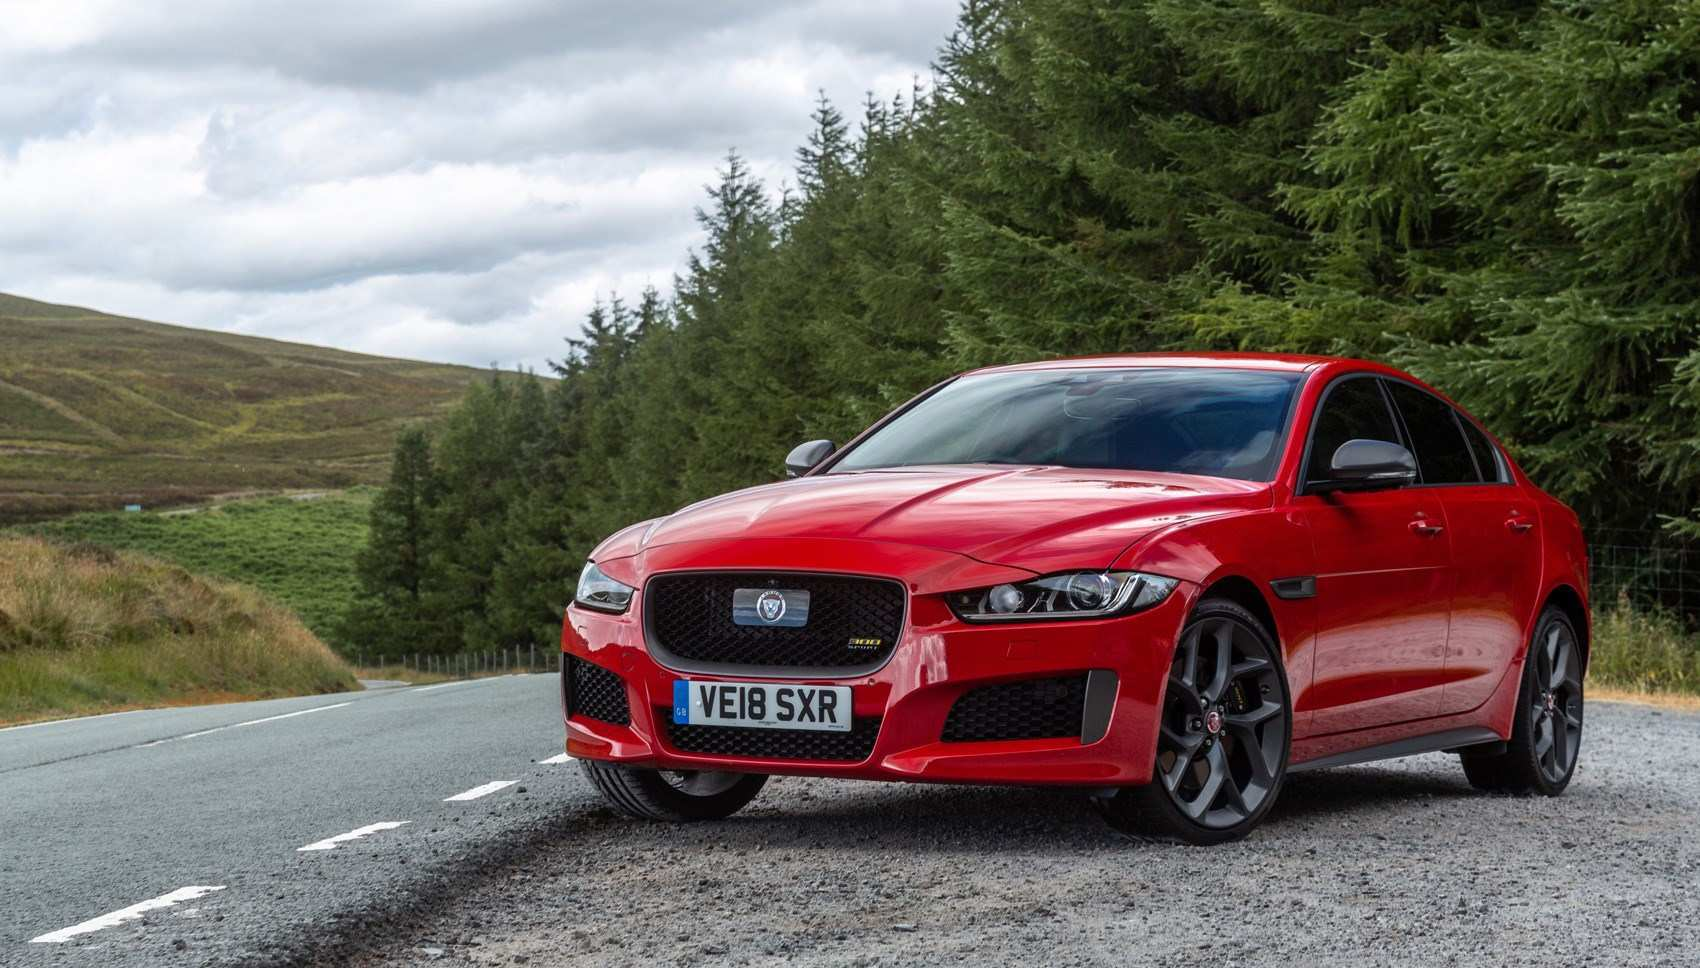 44 All New 2020 Jaguar Xe Review Release Date And Concept